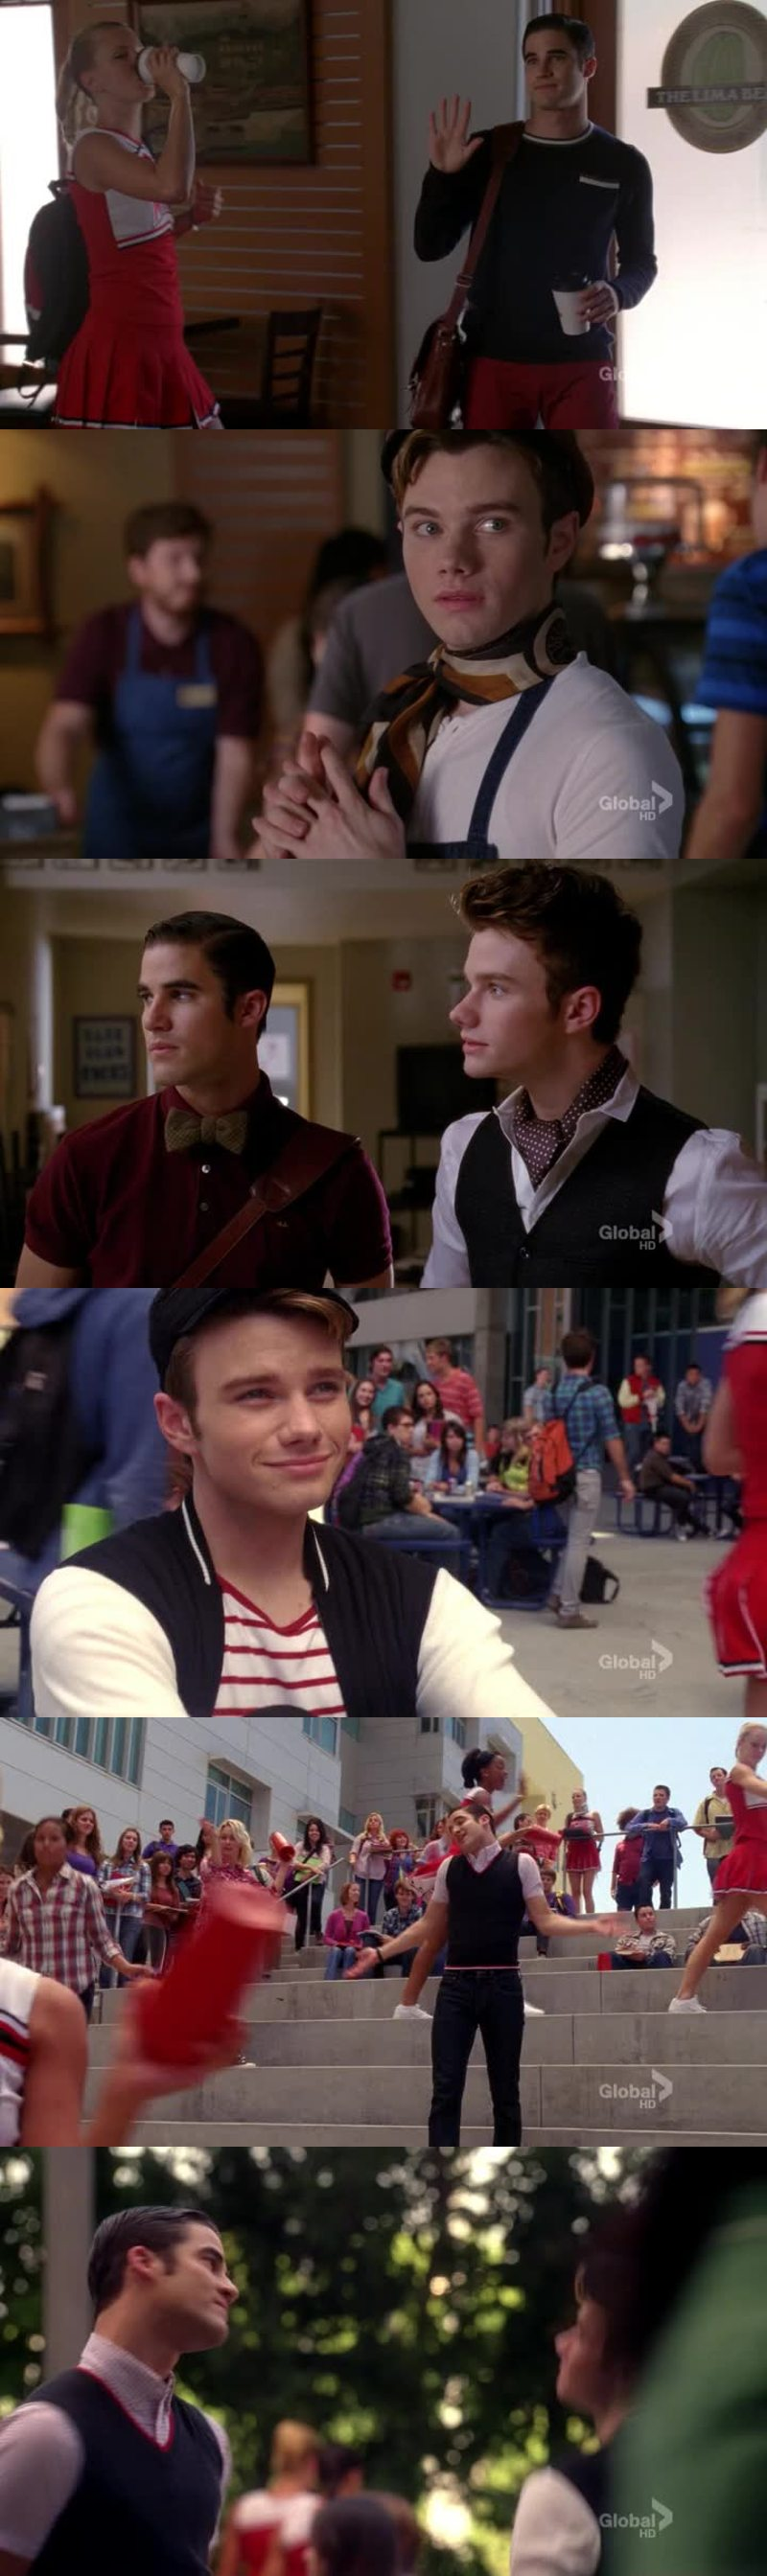 Klaine and Imagine Dragons... OMFG NOW I CAN DIE HAPPY 😍😍😍😍😍😍😍😍😍😍